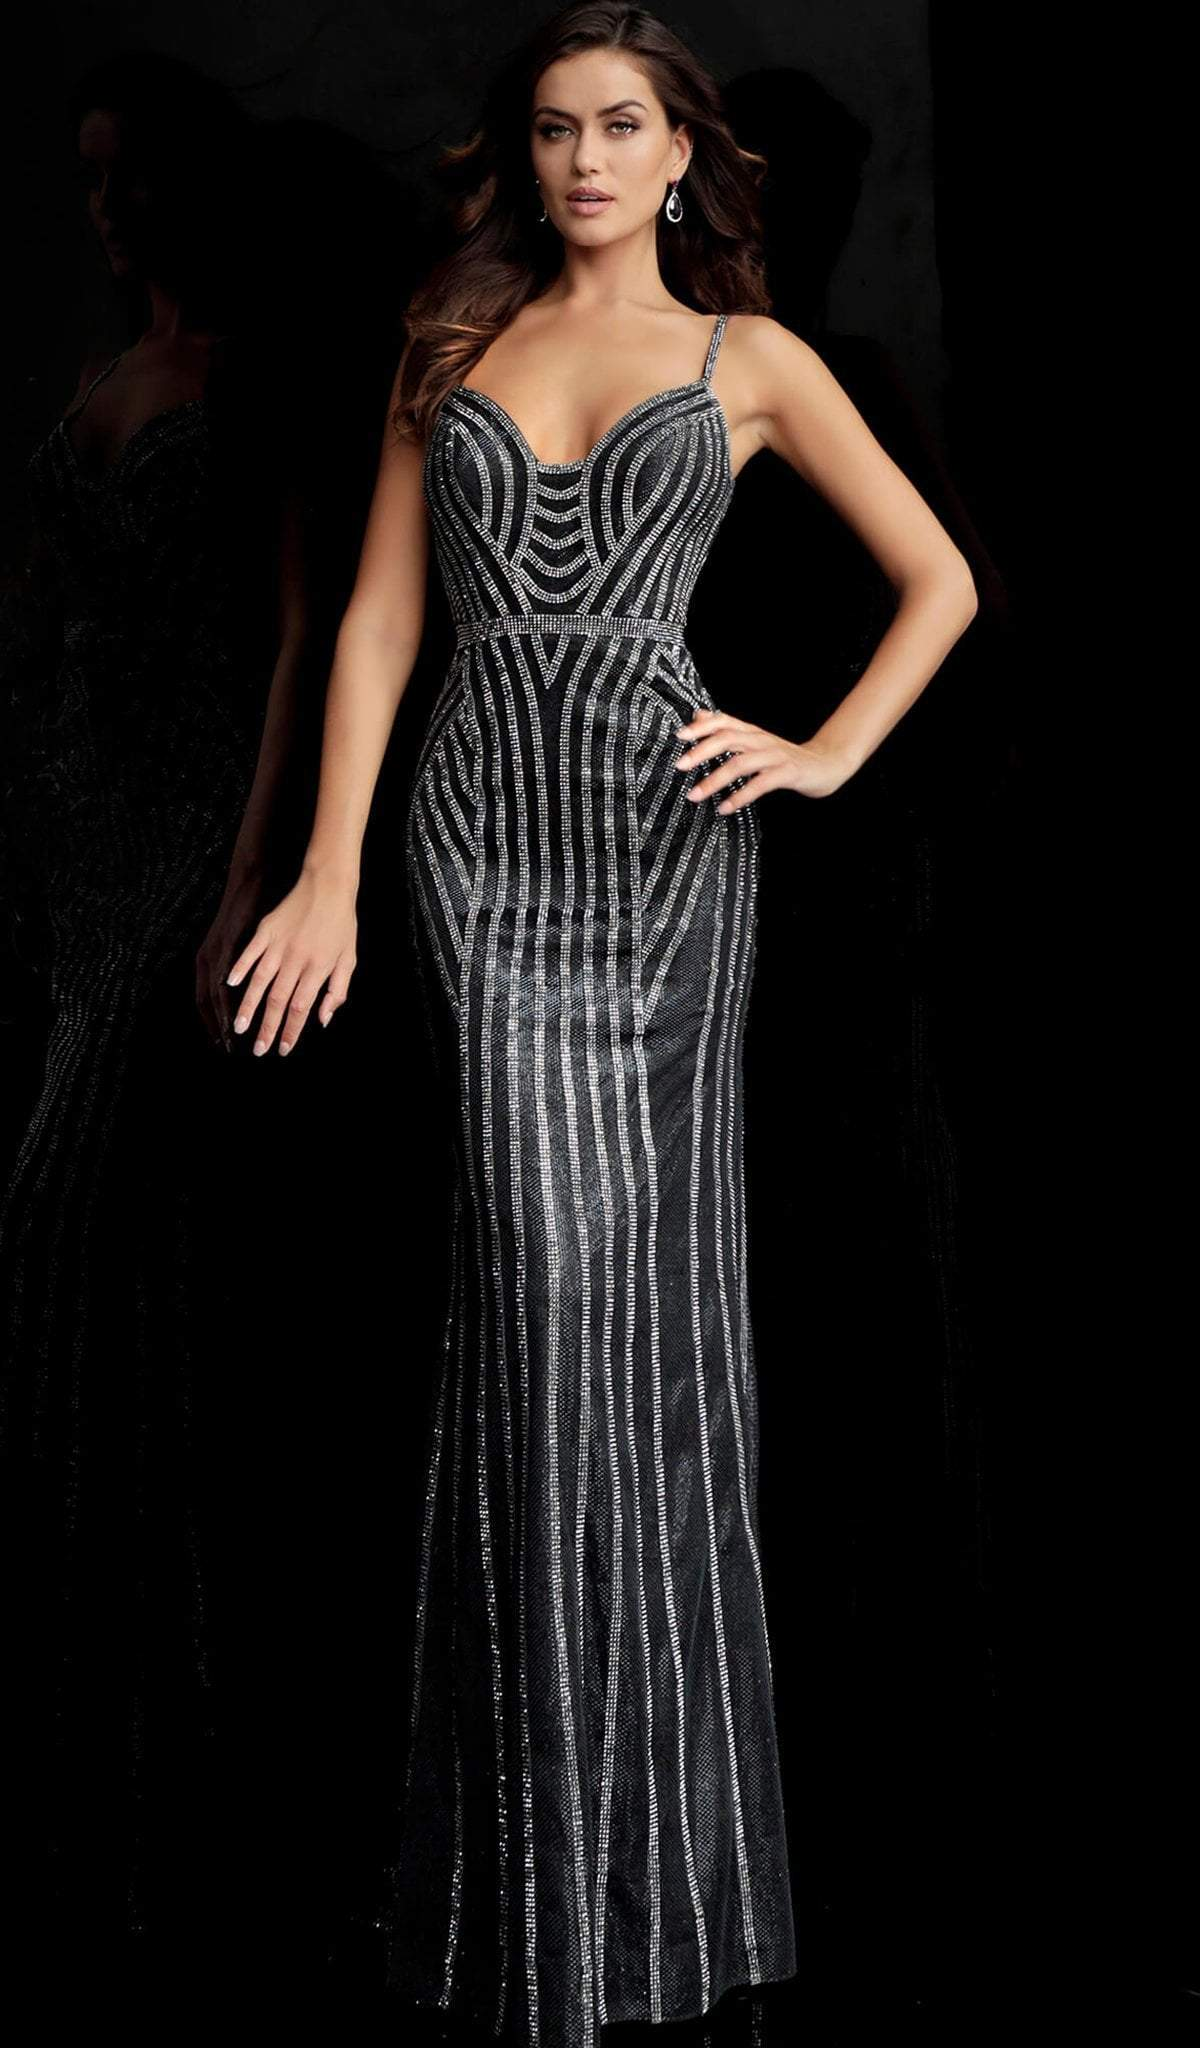 Jovani - 65978 Beaded Sweetheart Fitted Evening Gown in Black and Silver